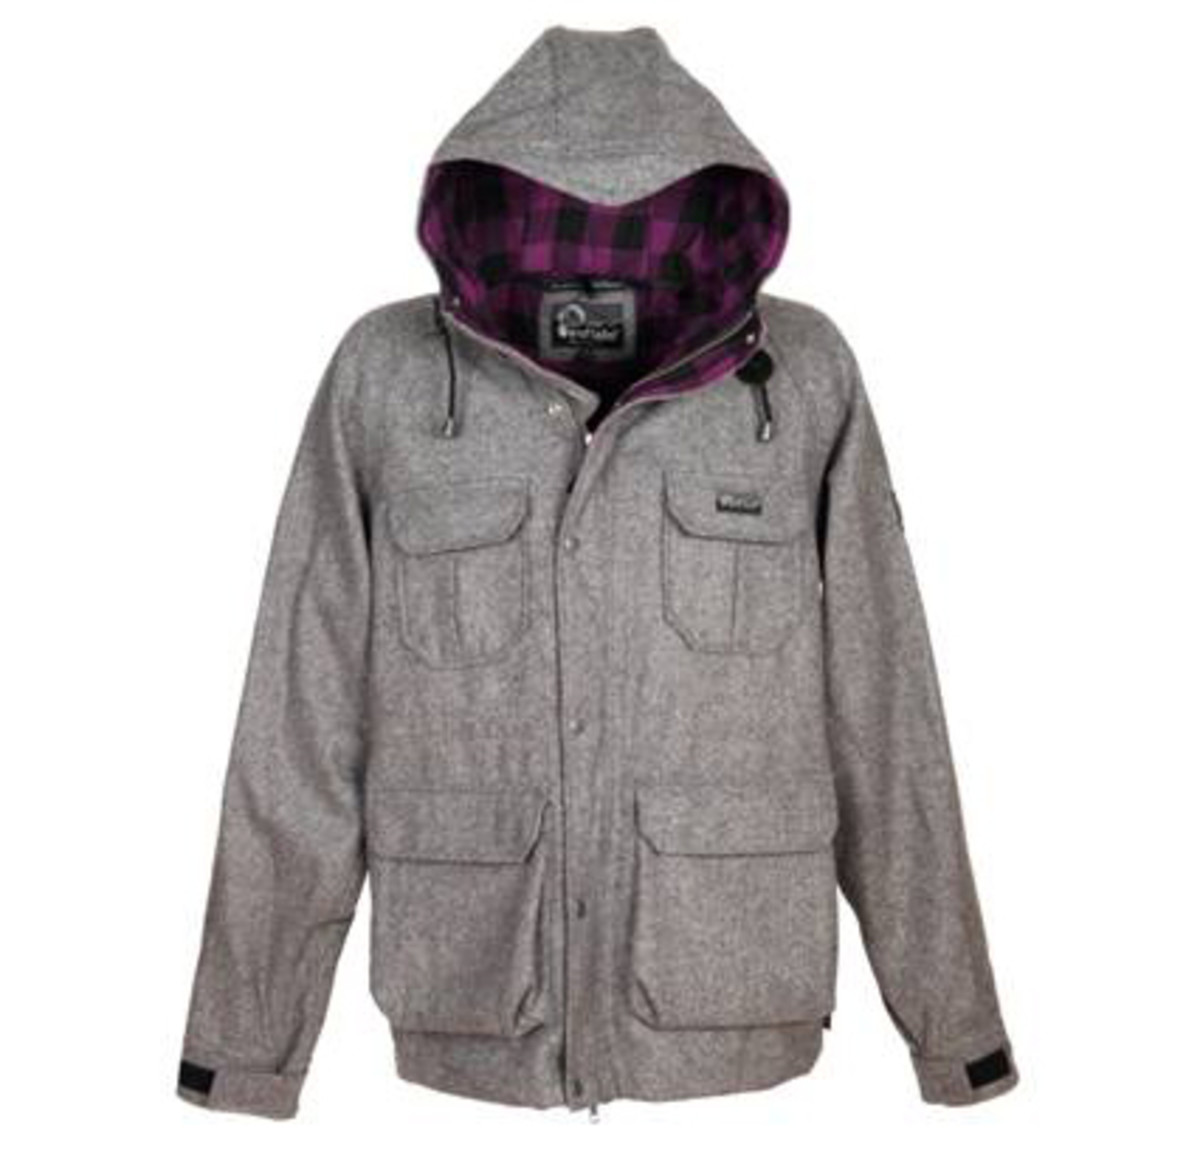 penfield-fall-winter-2009-02